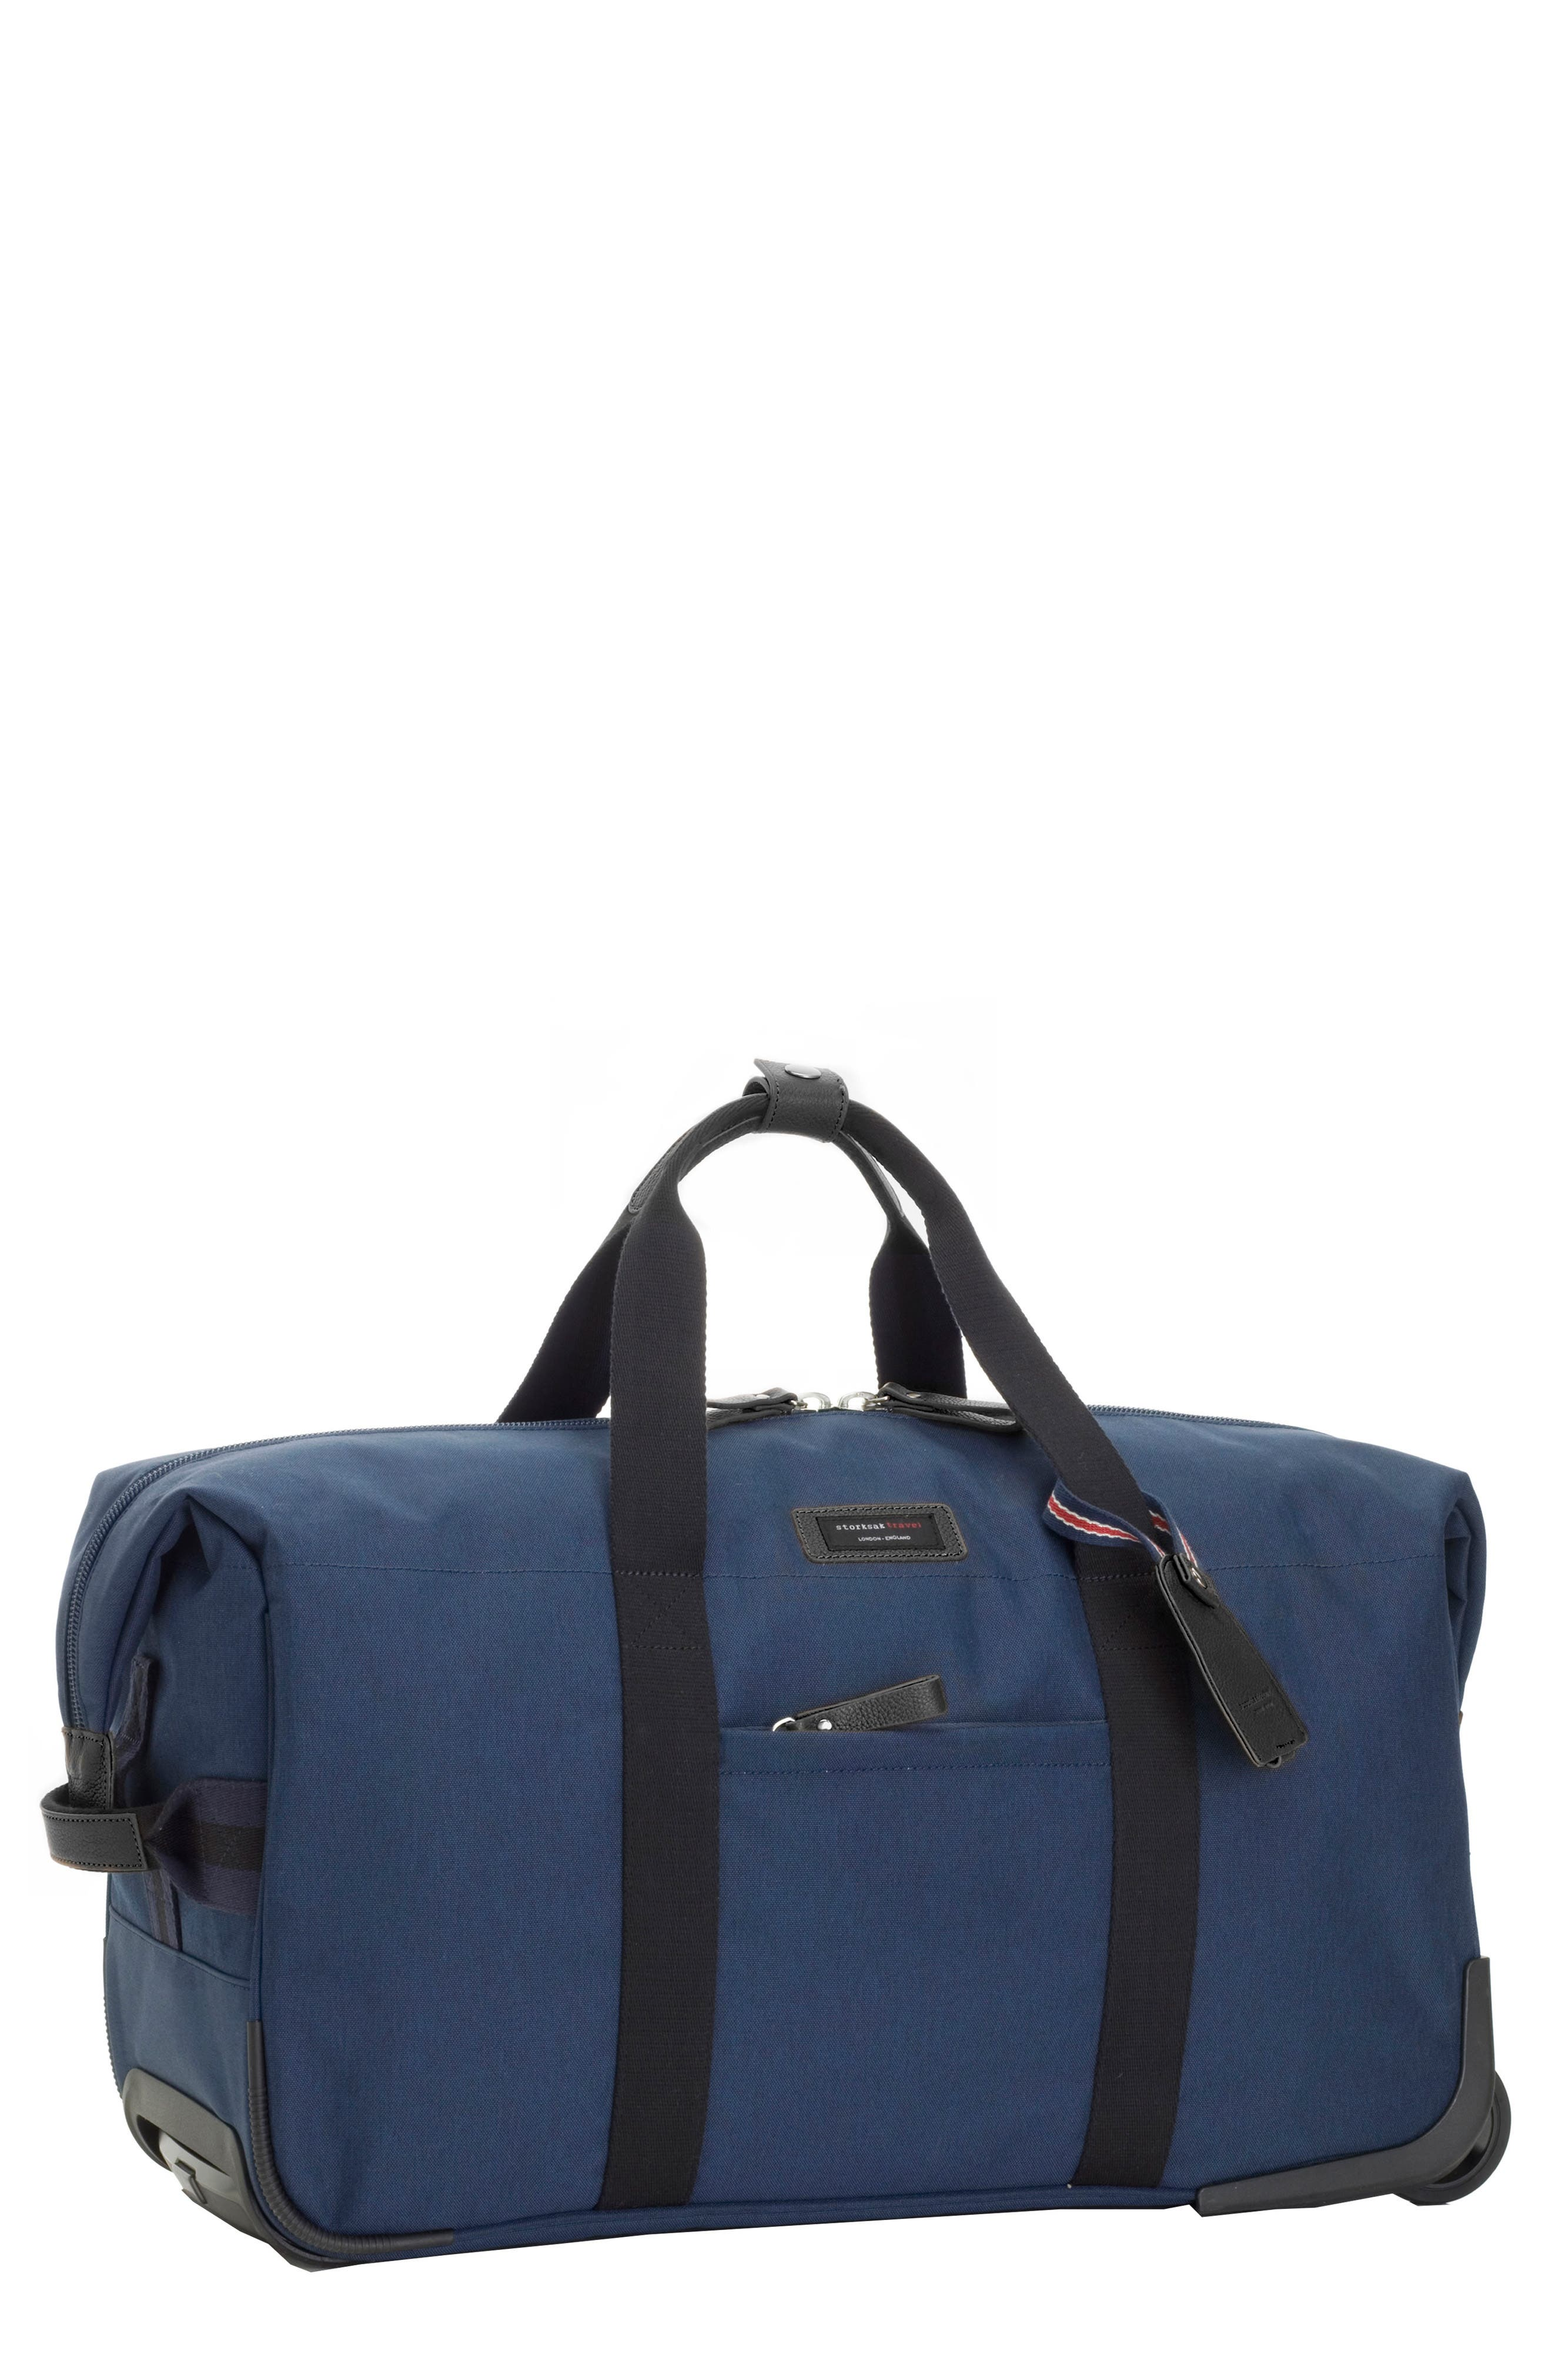 Cabin Wheeled 21-Inch Carry-On with Hanging Organizer,                             Main thumbnail 1, color,                             NAVY